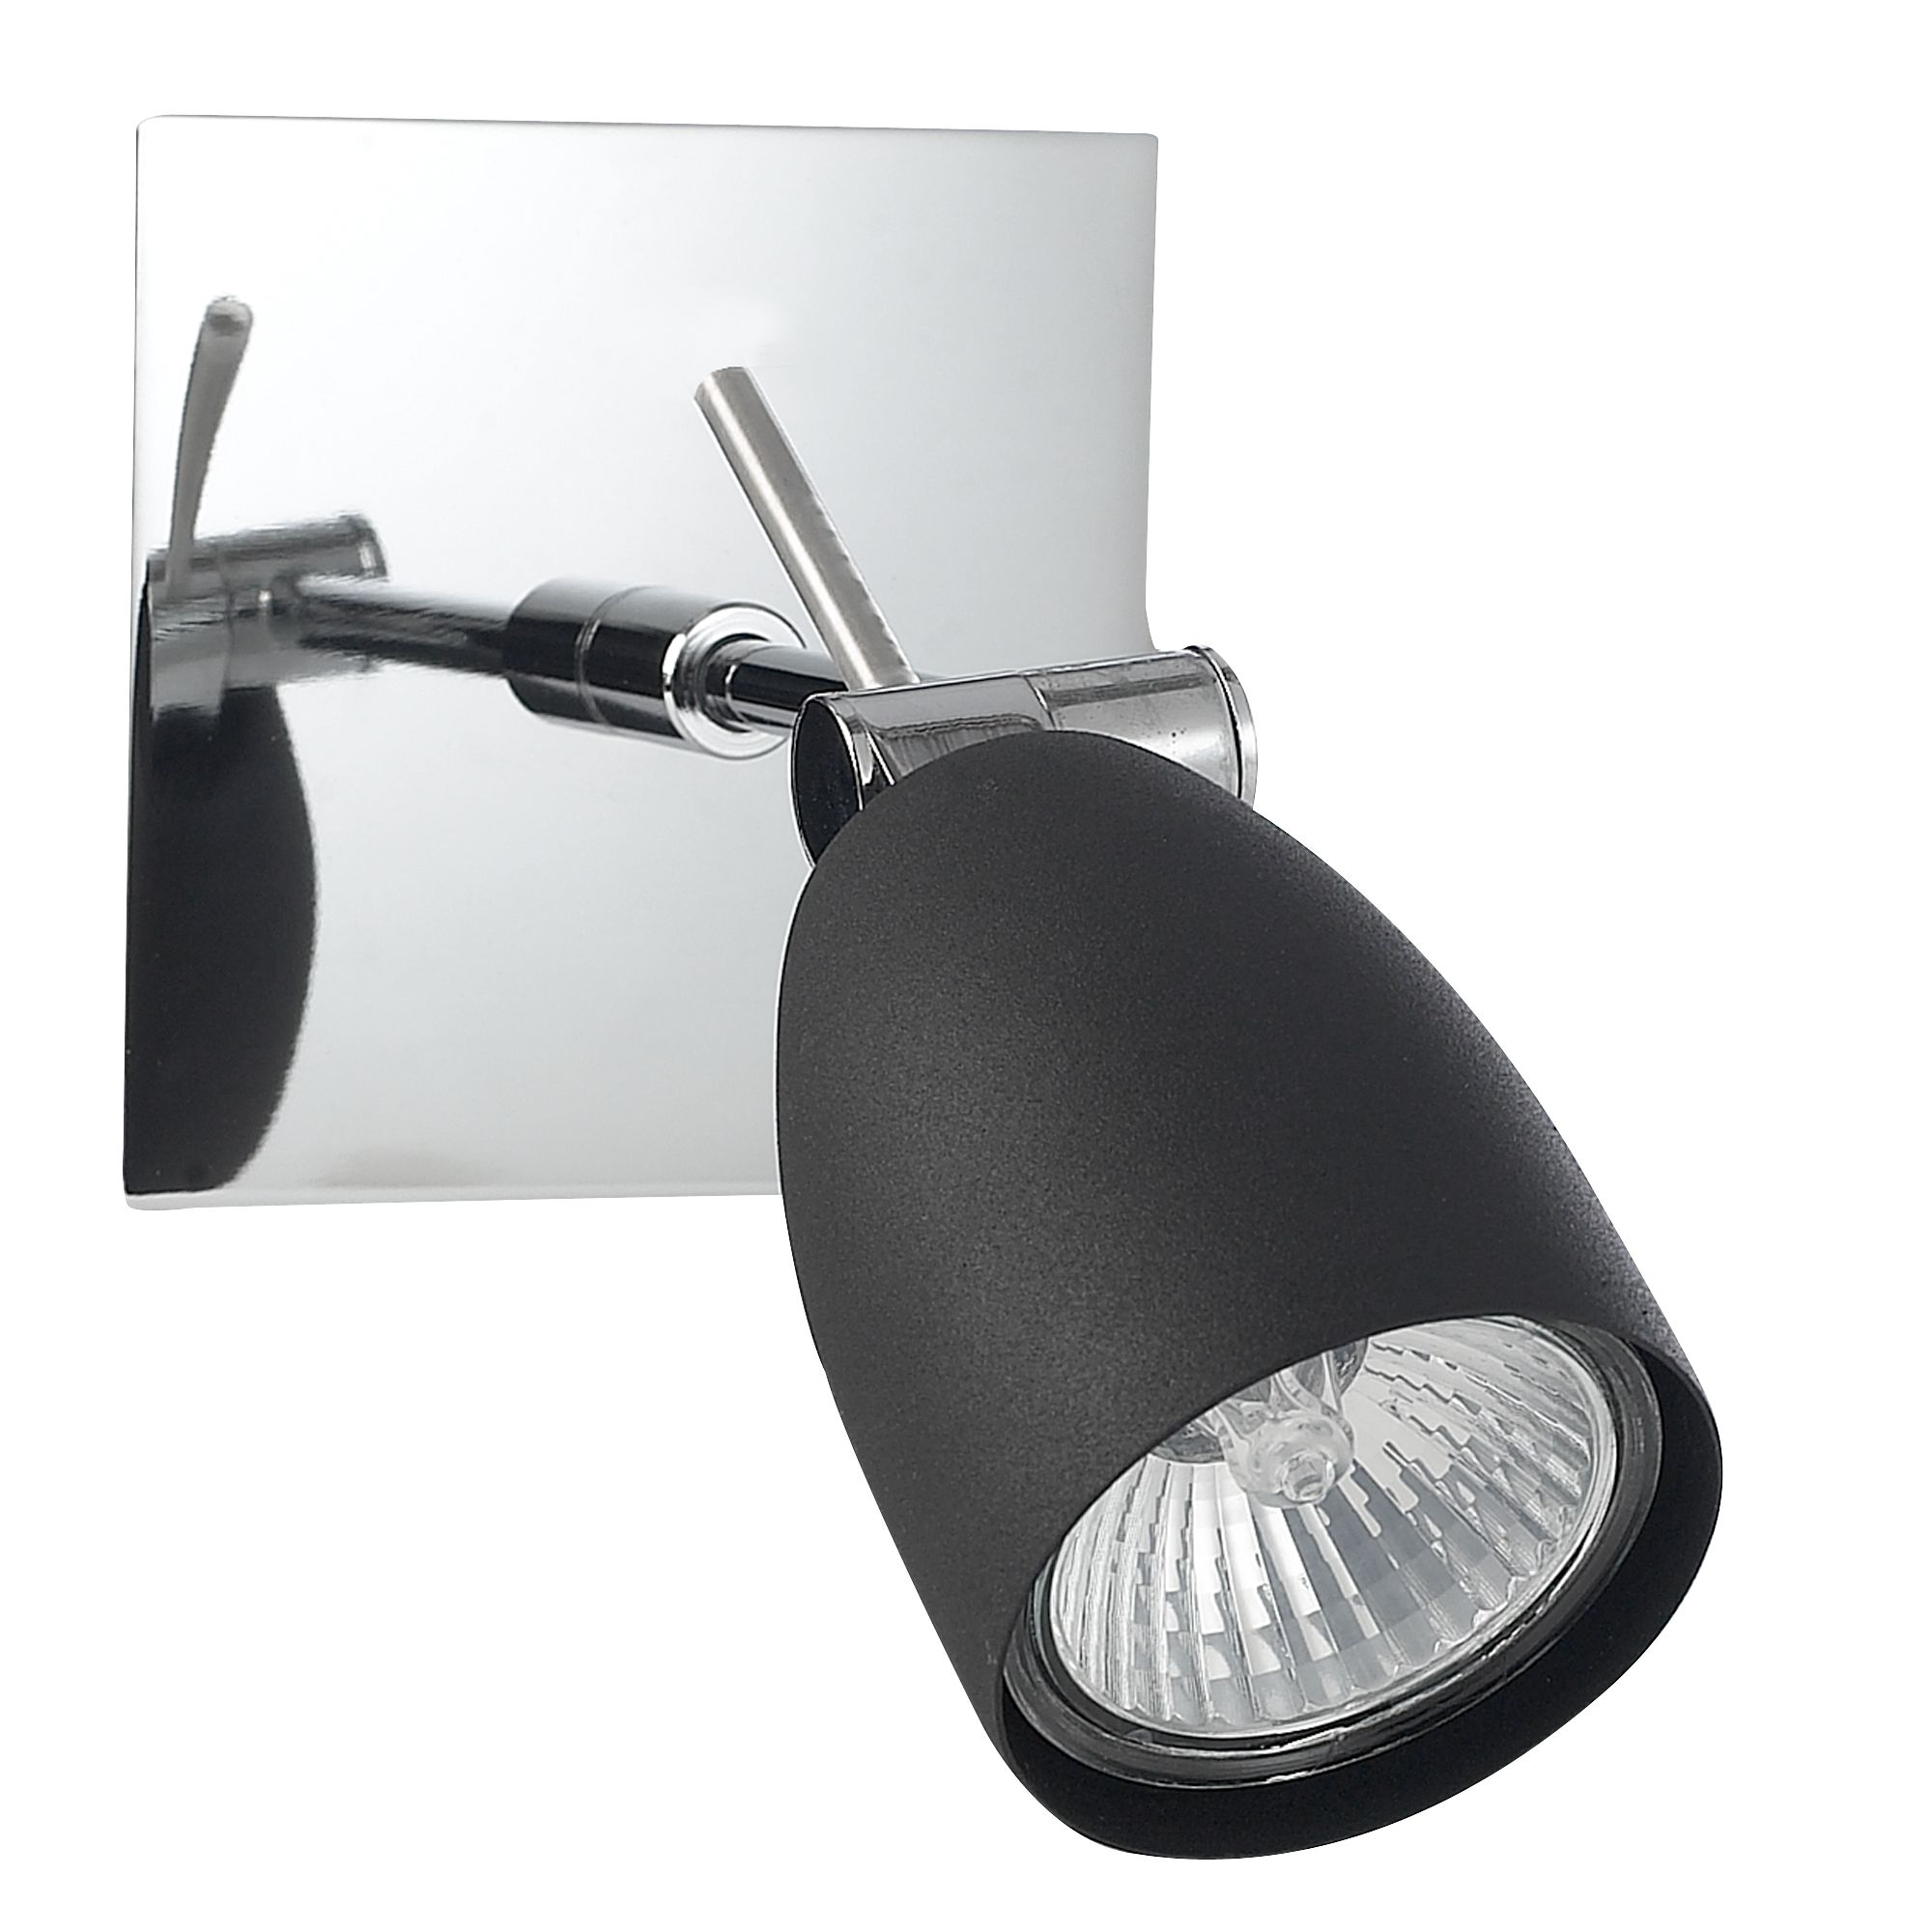 Wall Lights reviews, cheap prices, uk delivery, compare prices